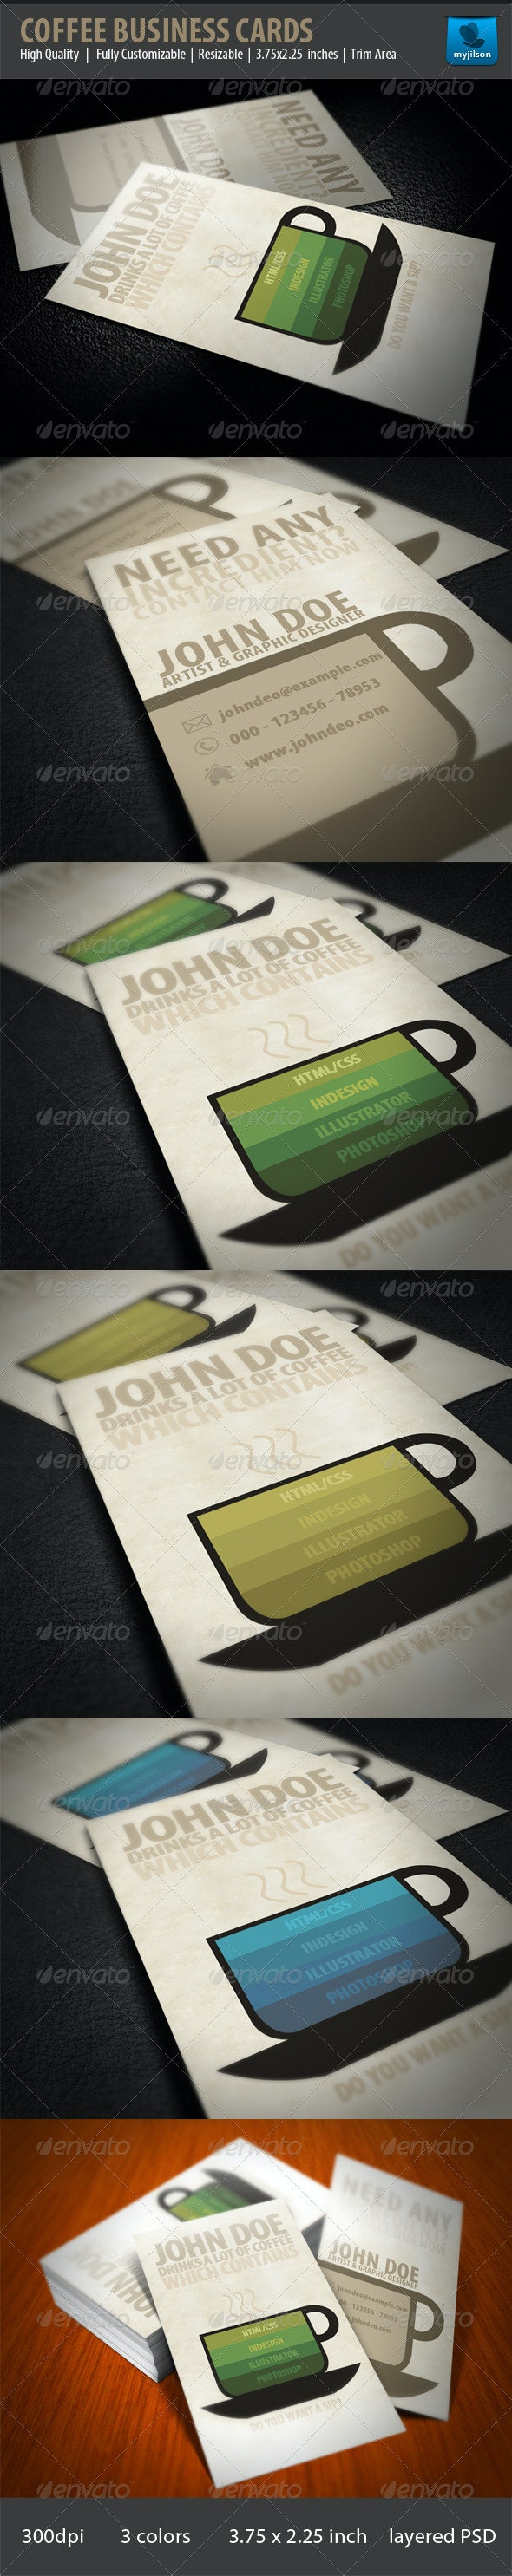 Creative Coffee Business Card - Industry Specific Business Cards